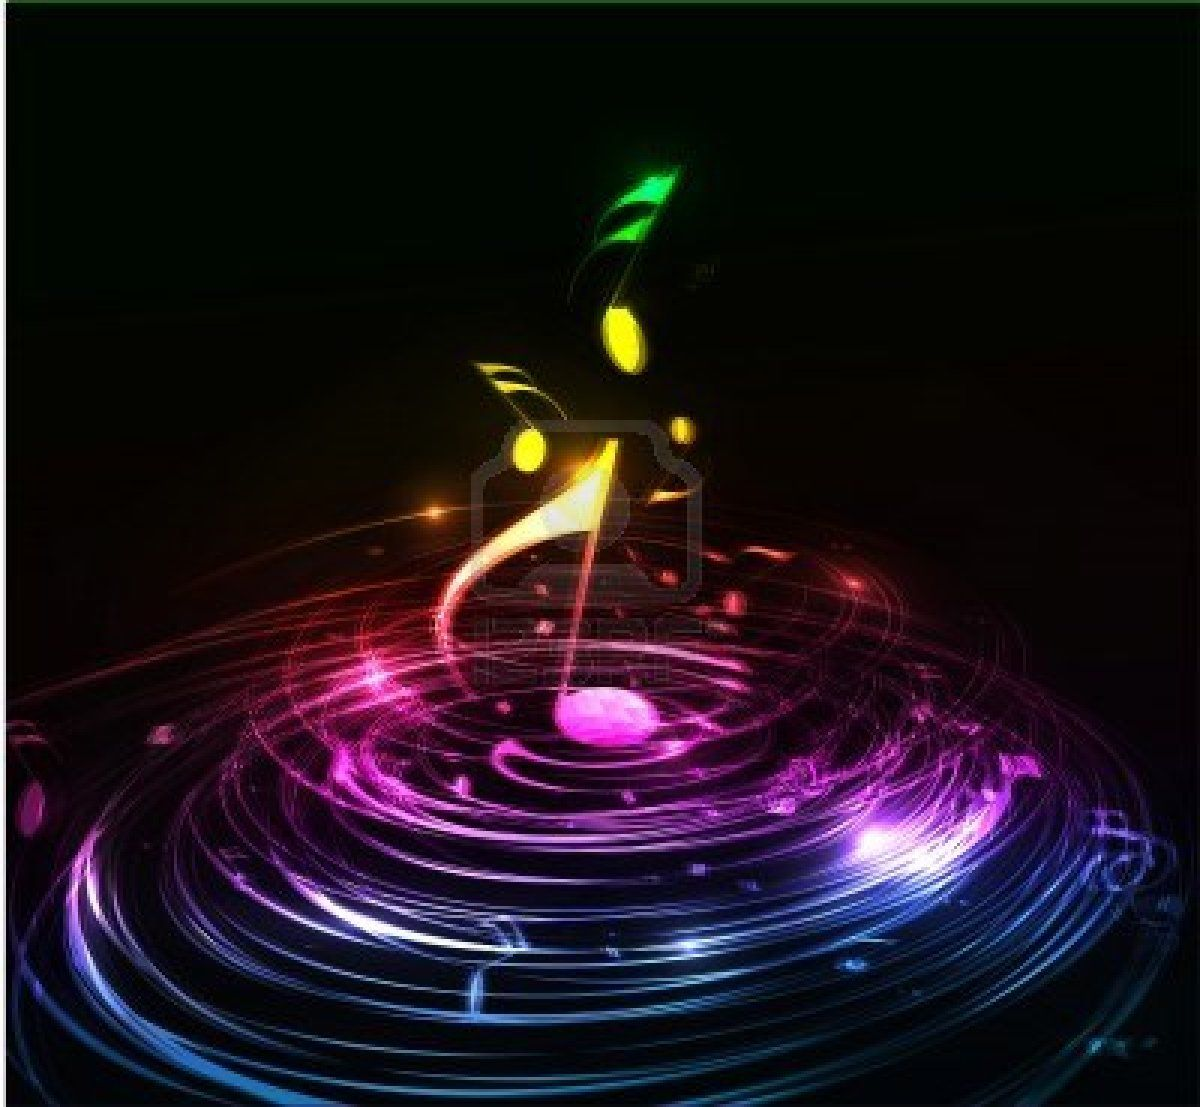 D Colorful Music Notes Wallpaper Abstract Music Notes Used In Your Project Vector Illustration Music Wallpaper Music Notes Abstract Colorful music symbol music wallpaper hd